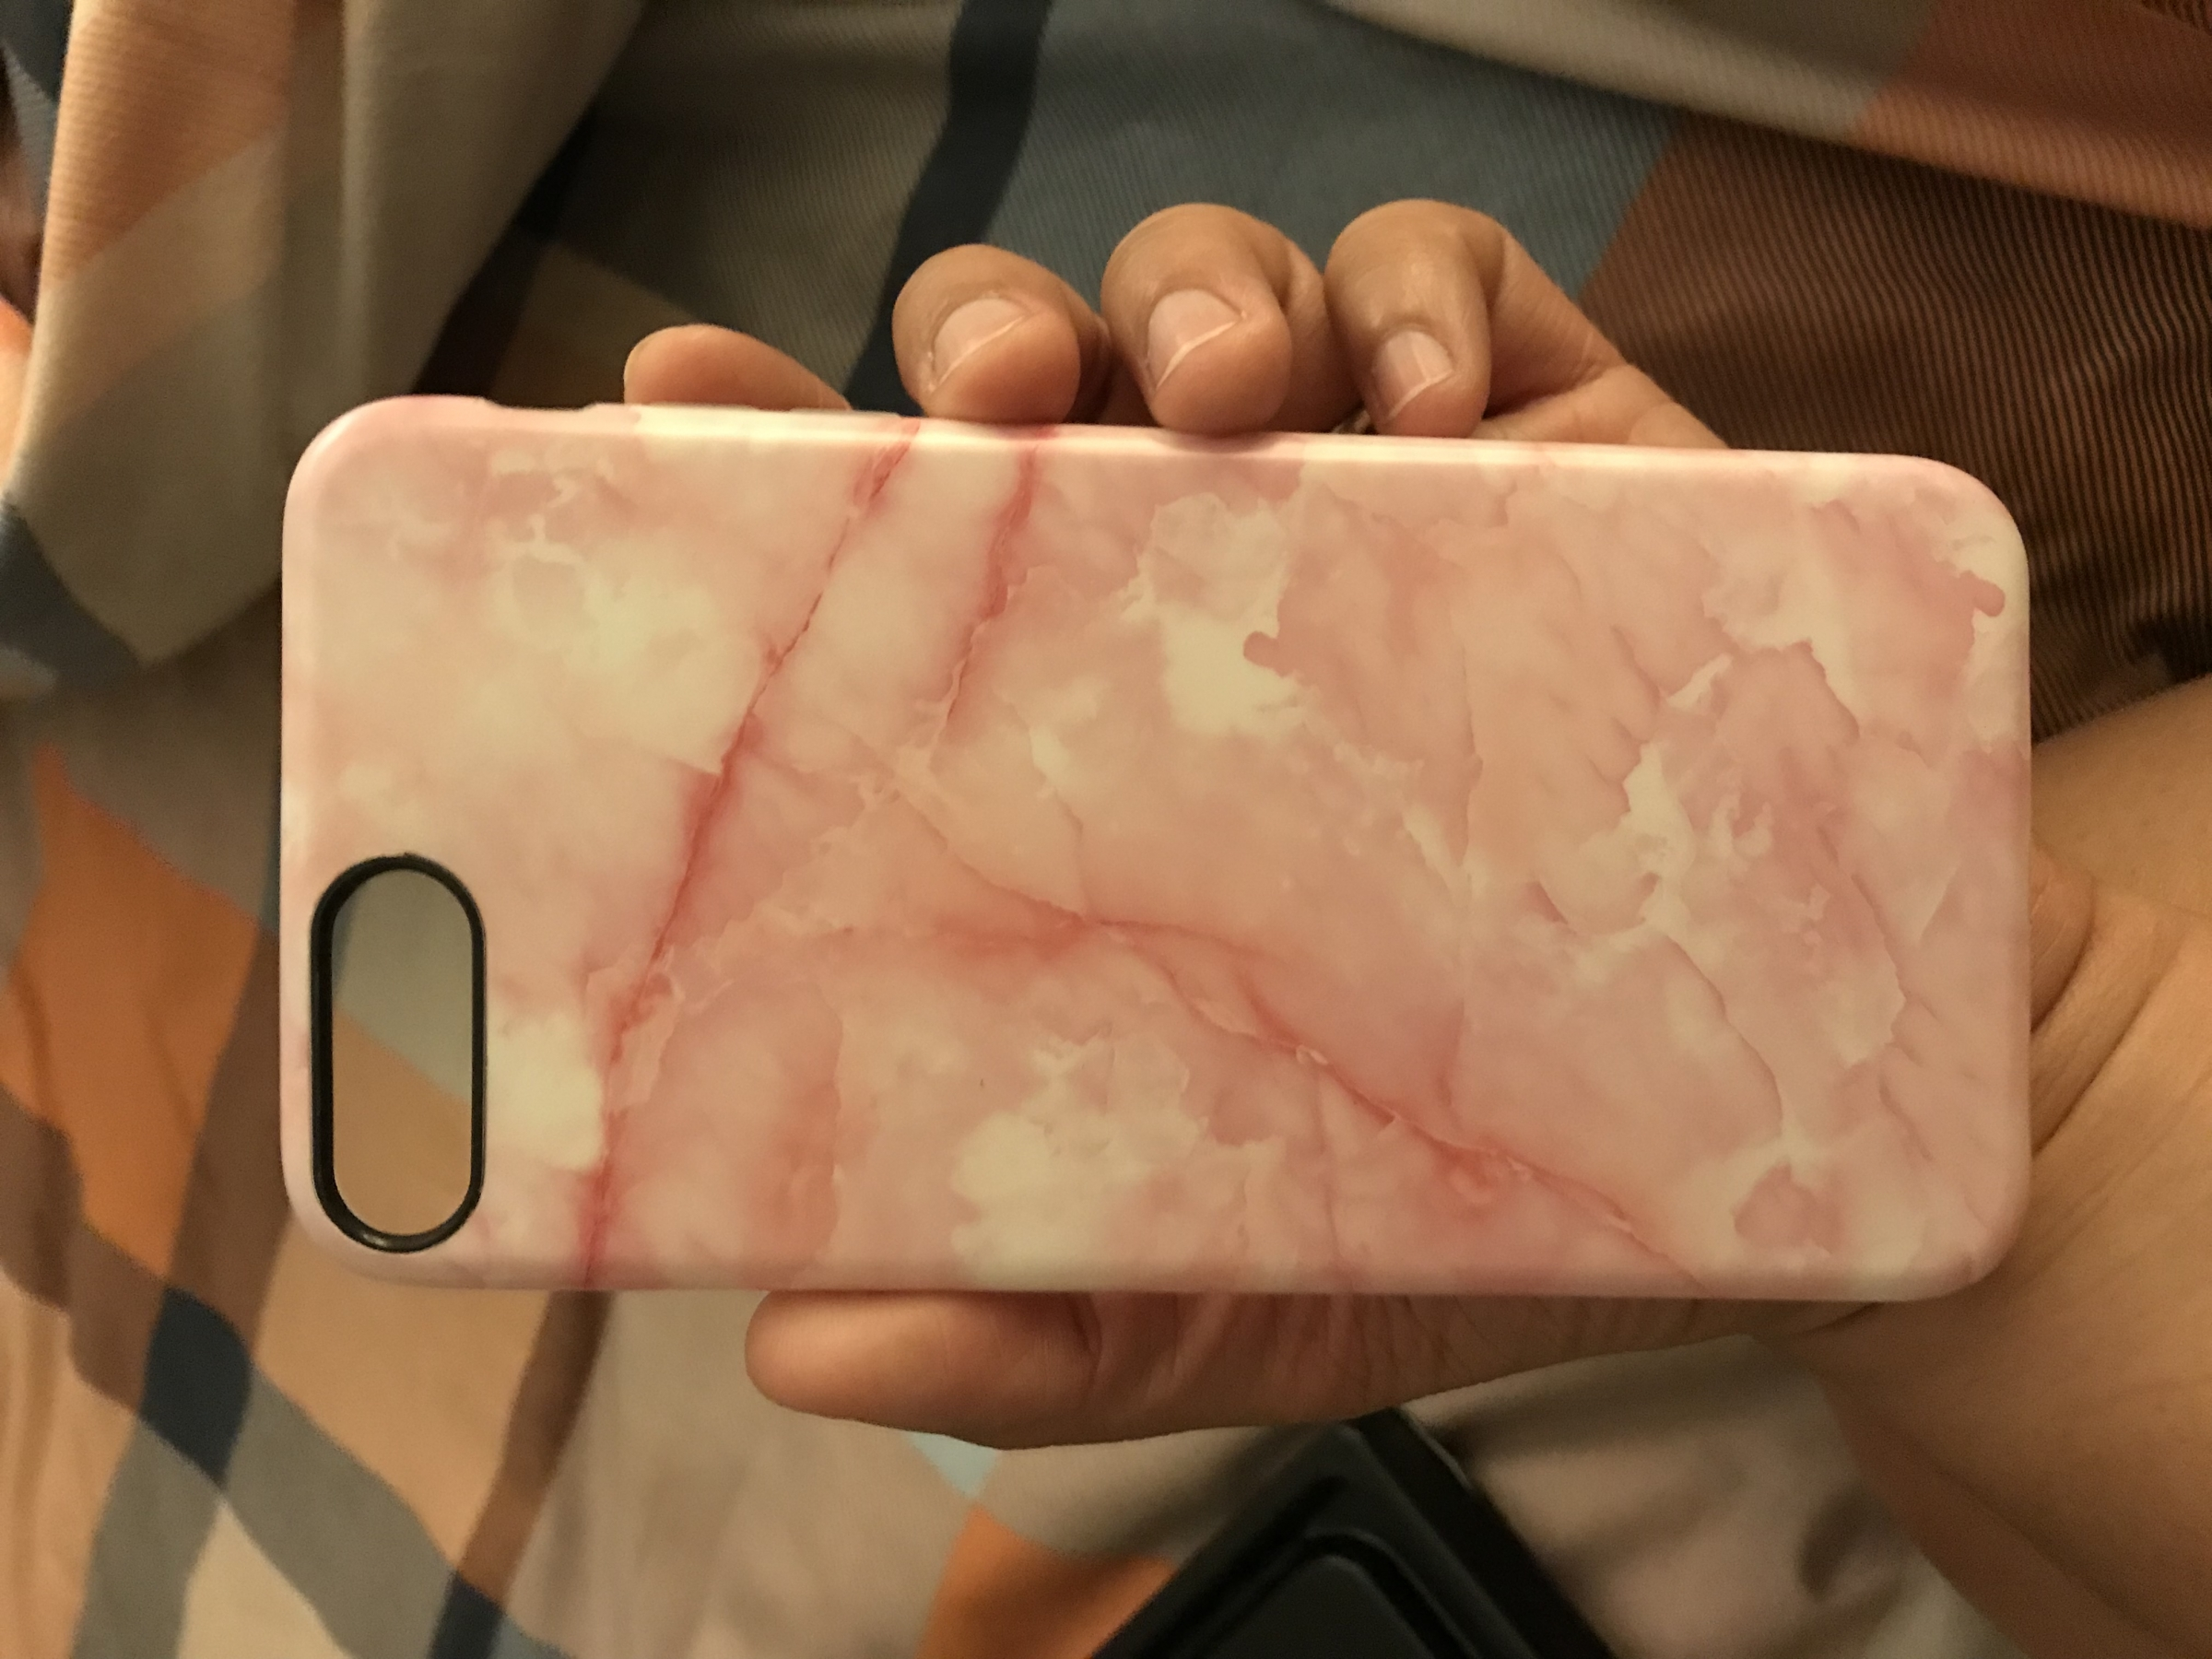 its a great case, i gave it 4 stars because its slippery.